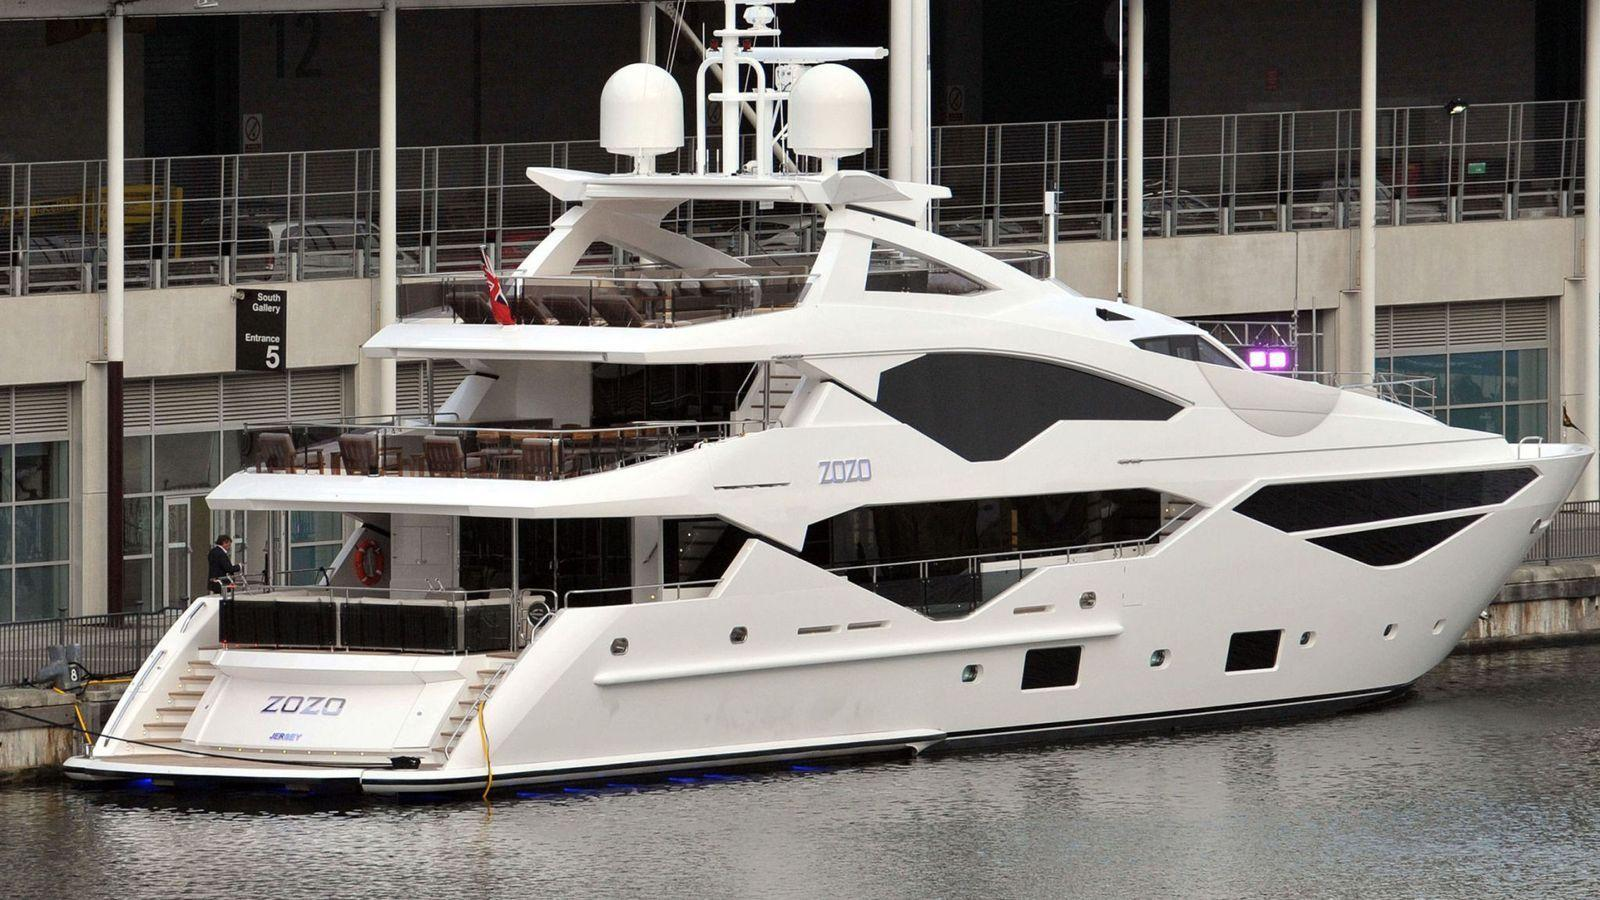 Leisure boat sector sales top £3bn for the first time since